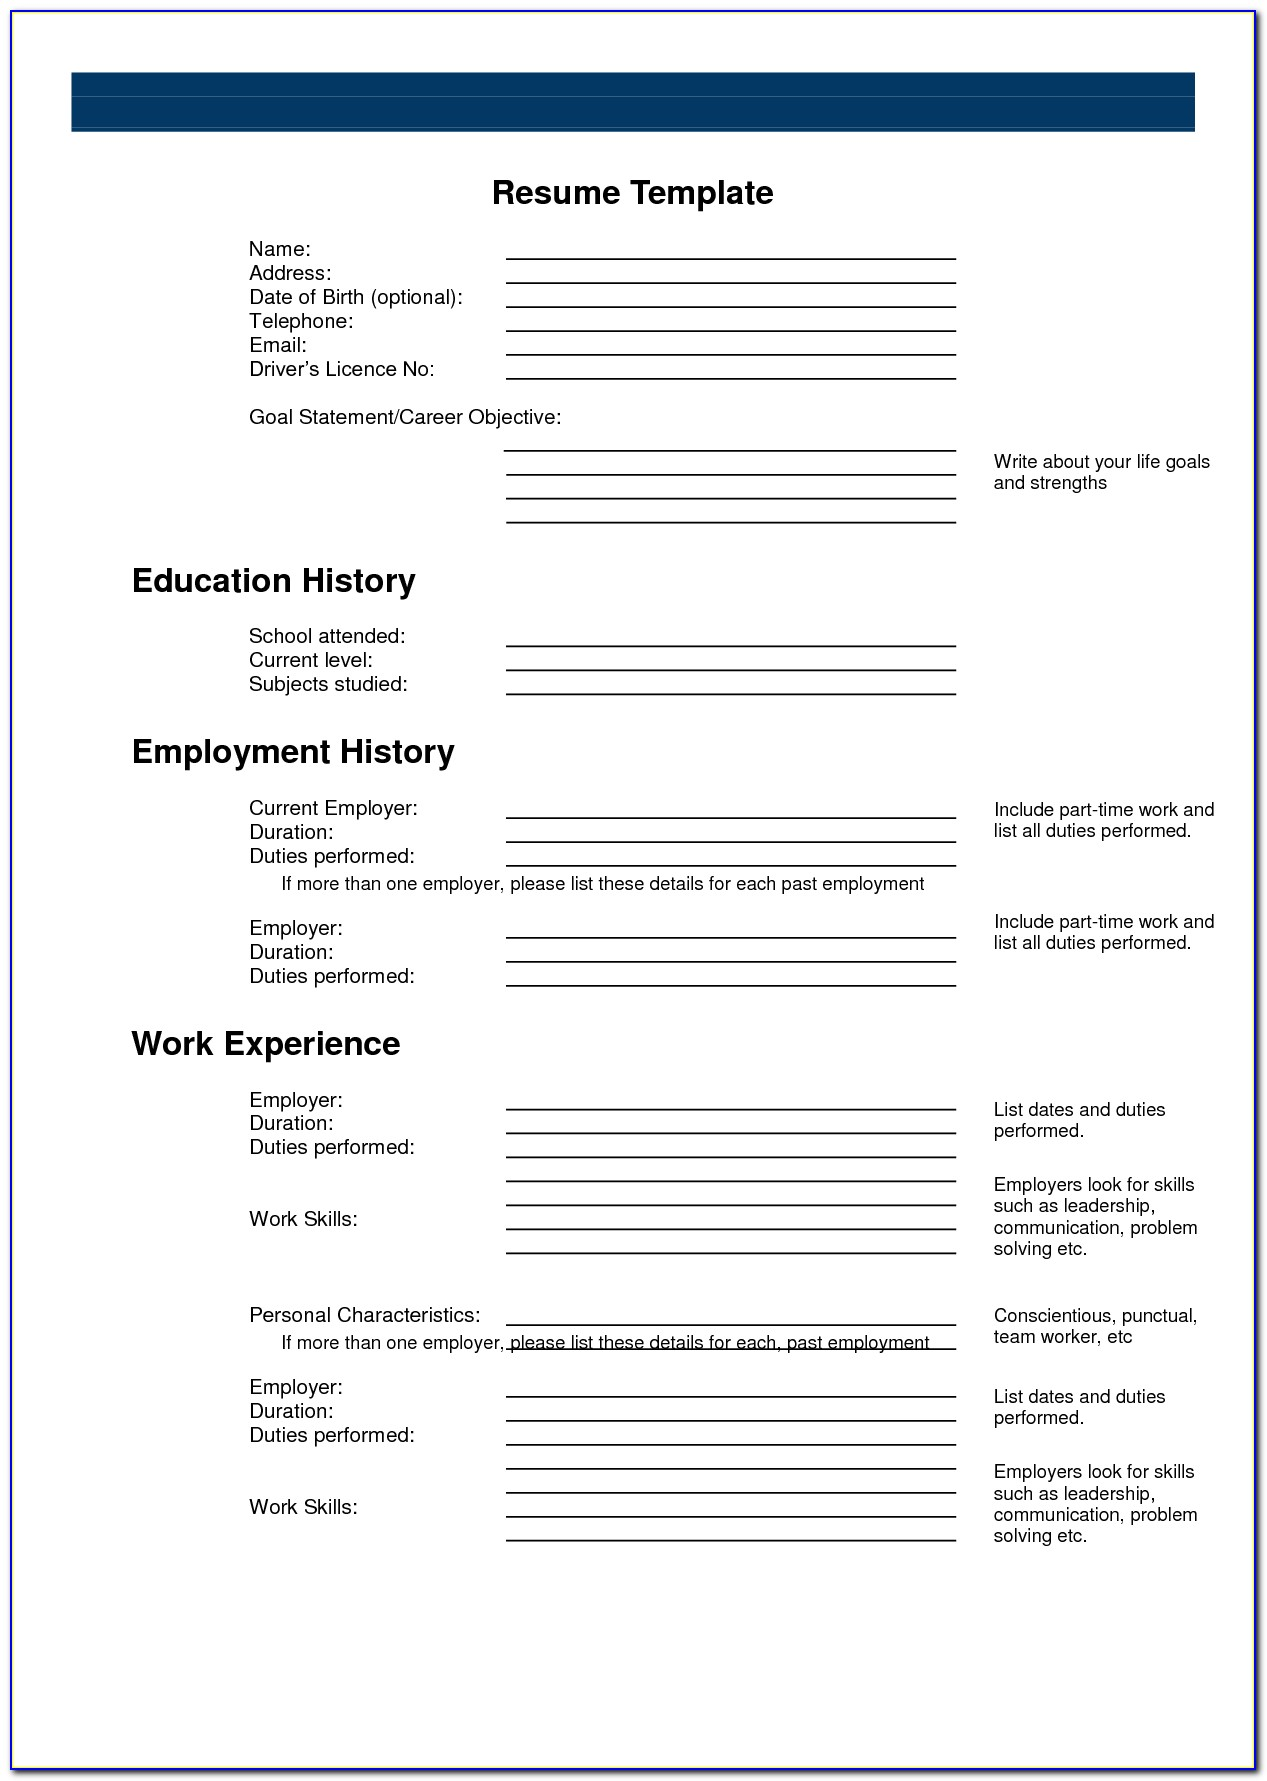 Blank Resumes To Print